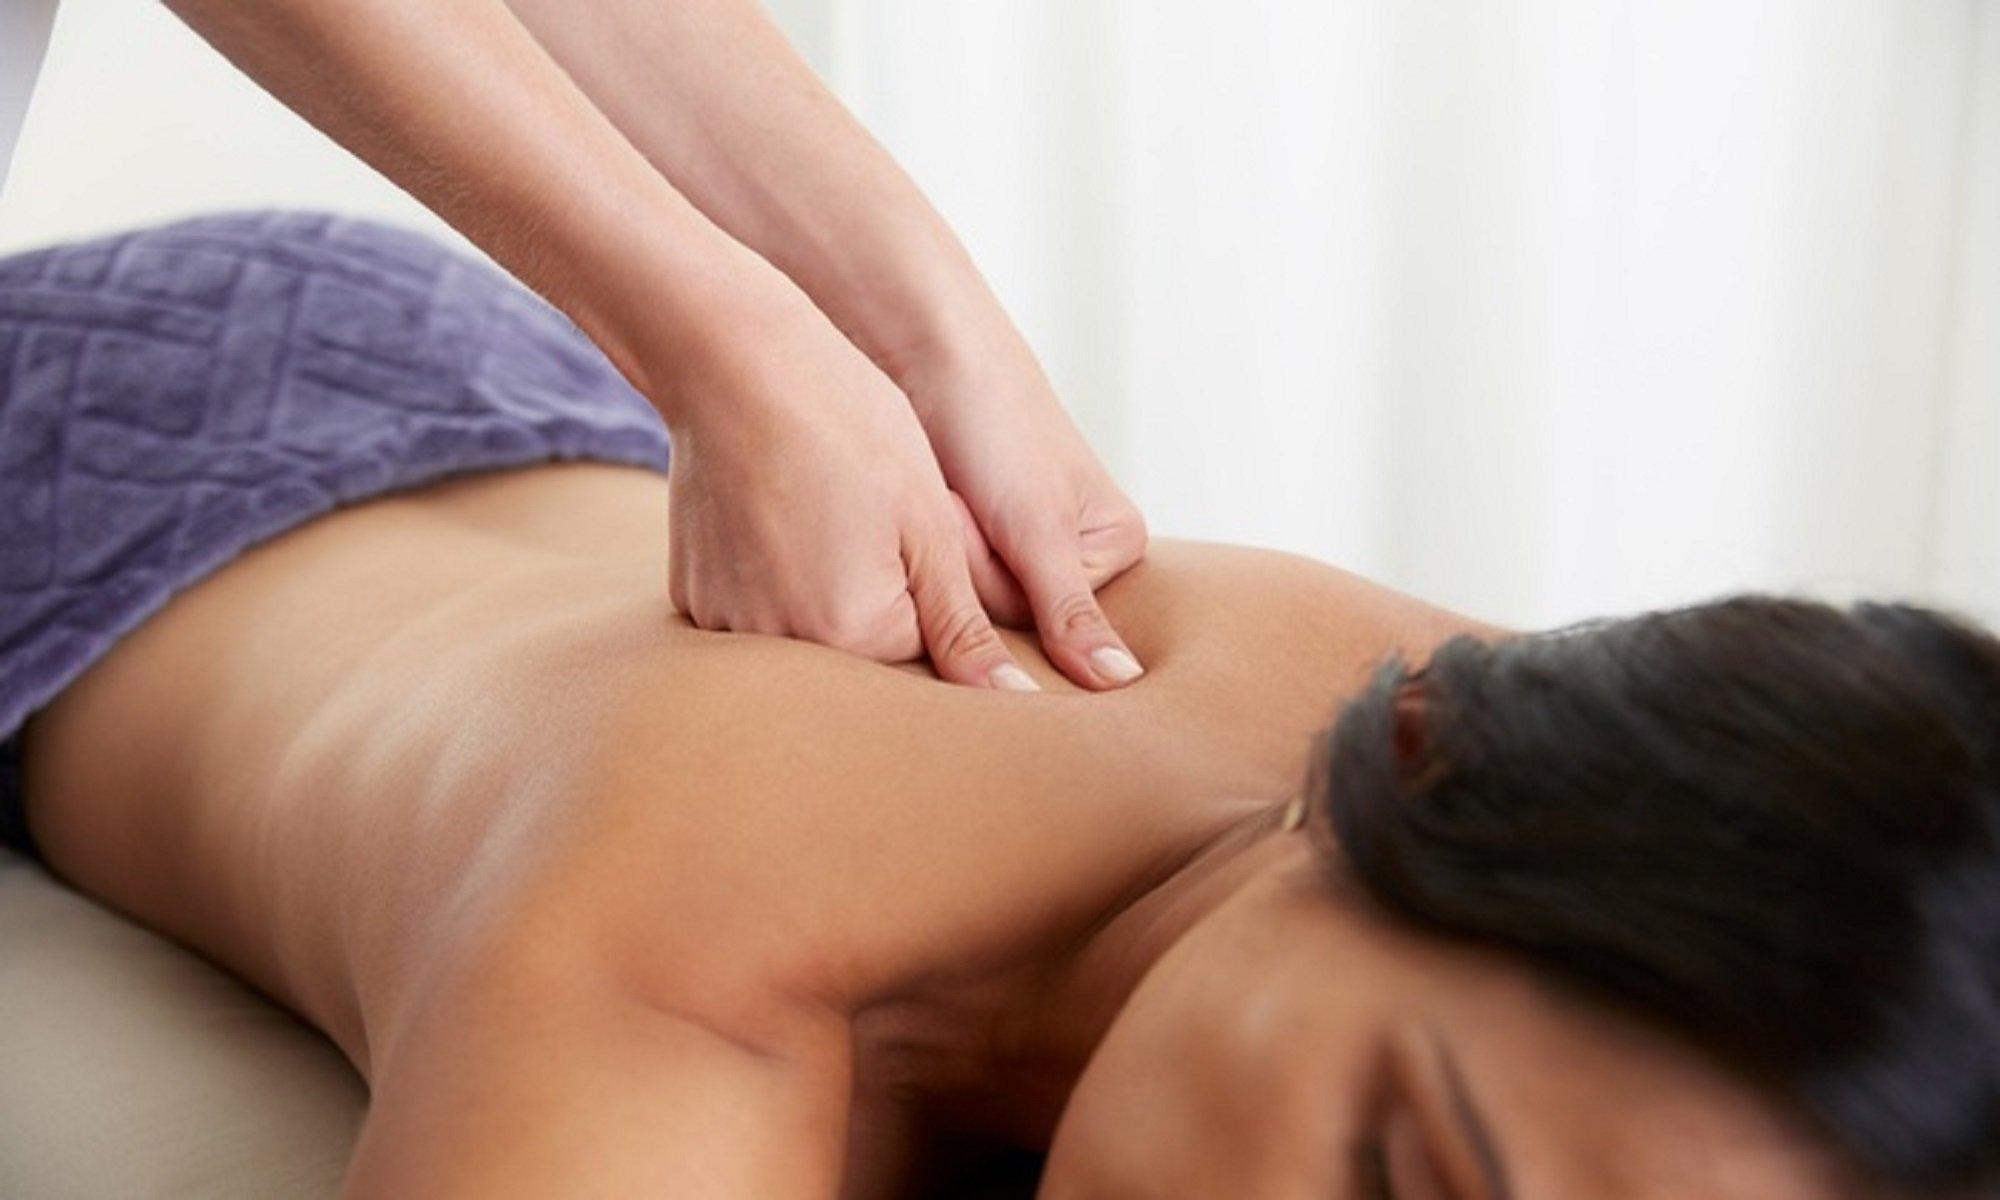 Why Should You Treat Yourself to a Deep Tissue Massage? - Tantra Nectar